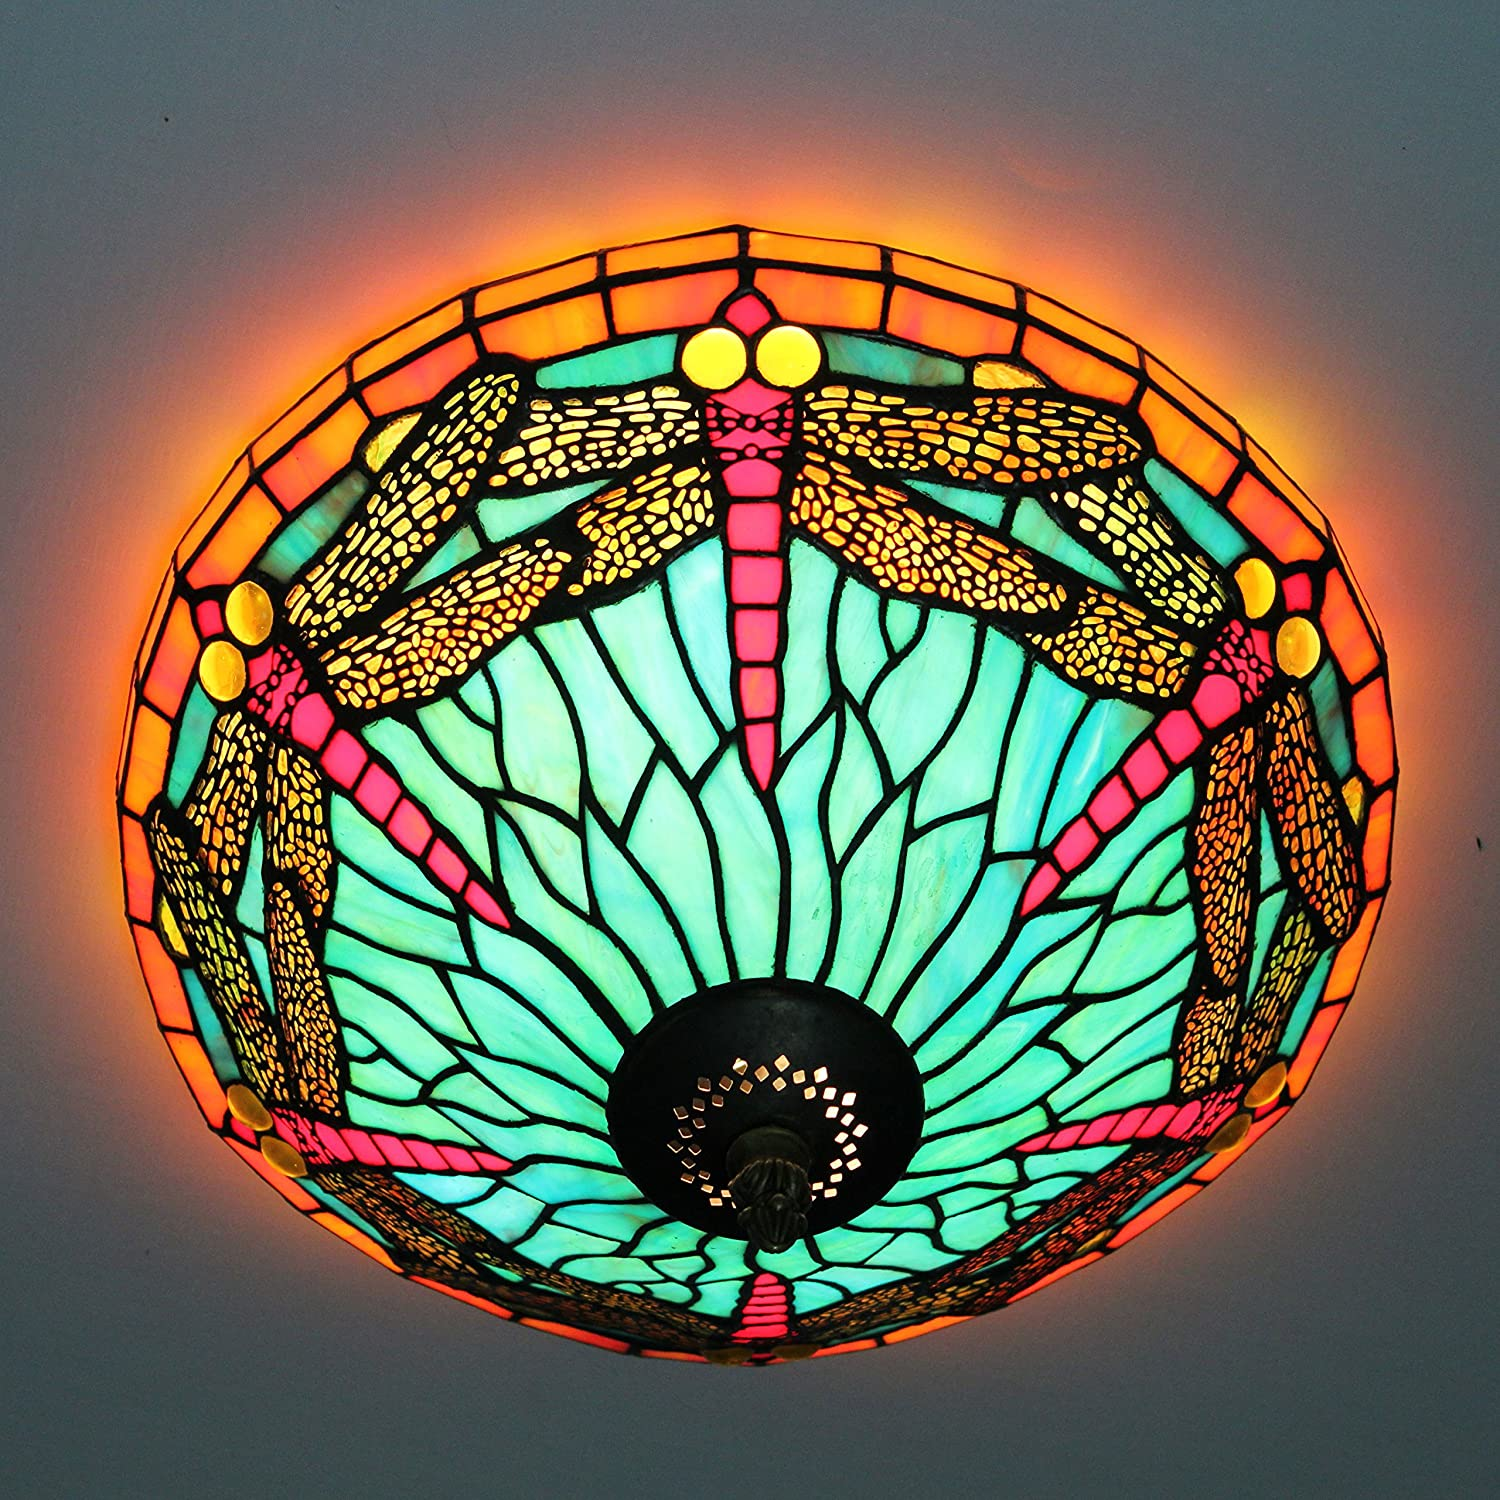 16-Inch European Retro Style Tiffany Dragonfly Stained Glass Flush Mount Ceiling Light Dining Room Light